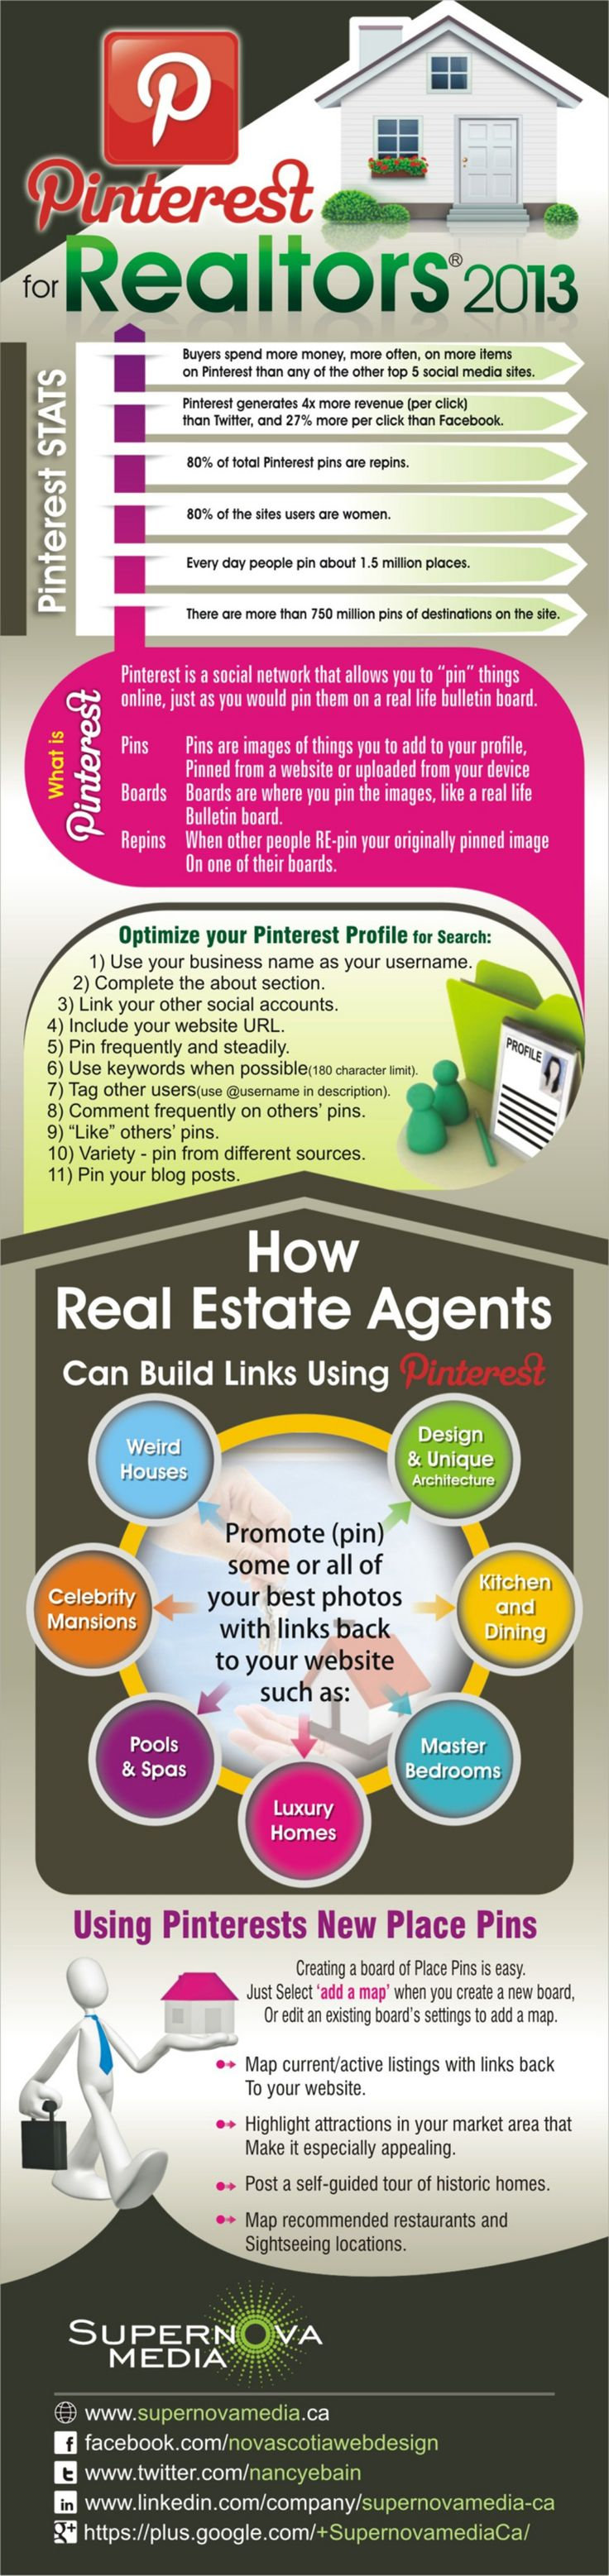 Pinterest for Real Estate Agents